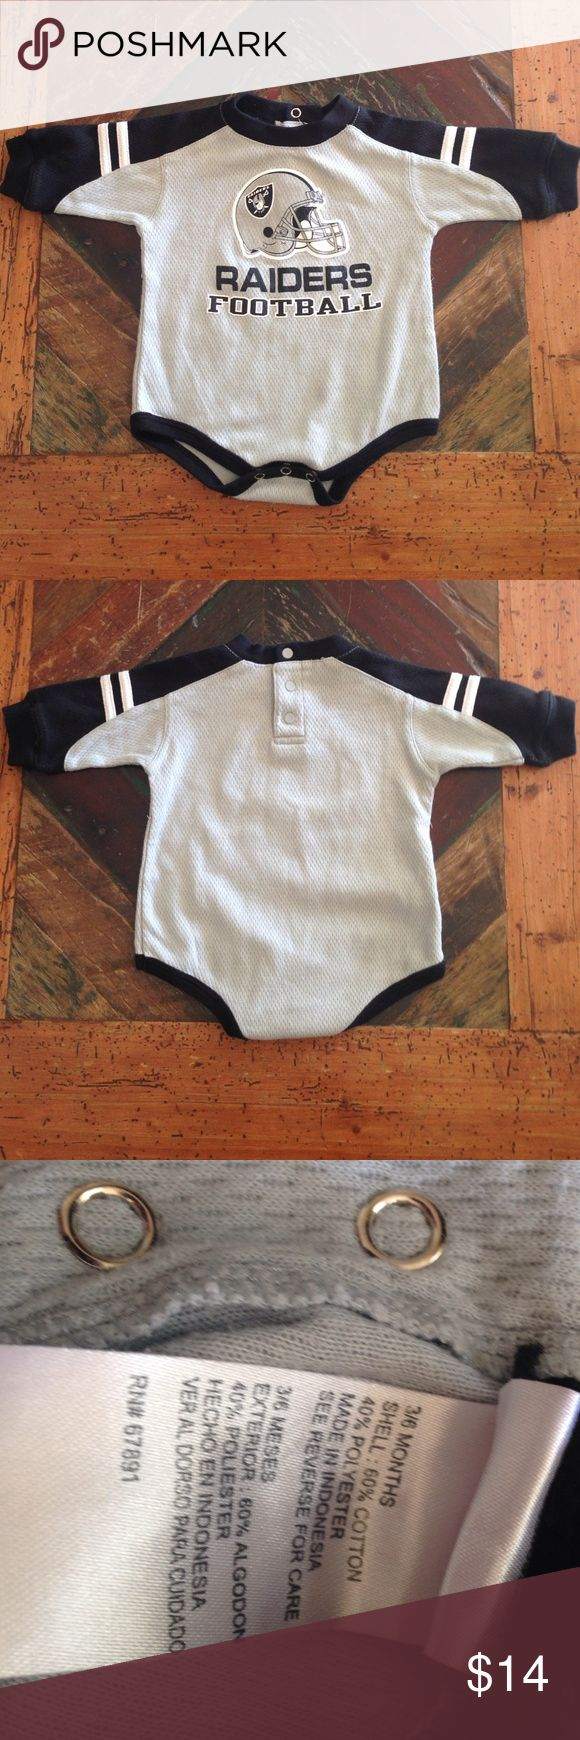 NFL Raiders Onesie NFL, gray and black onesie, 3/6 mo. Pre-loved, no seen flaws. NFL One Pieces